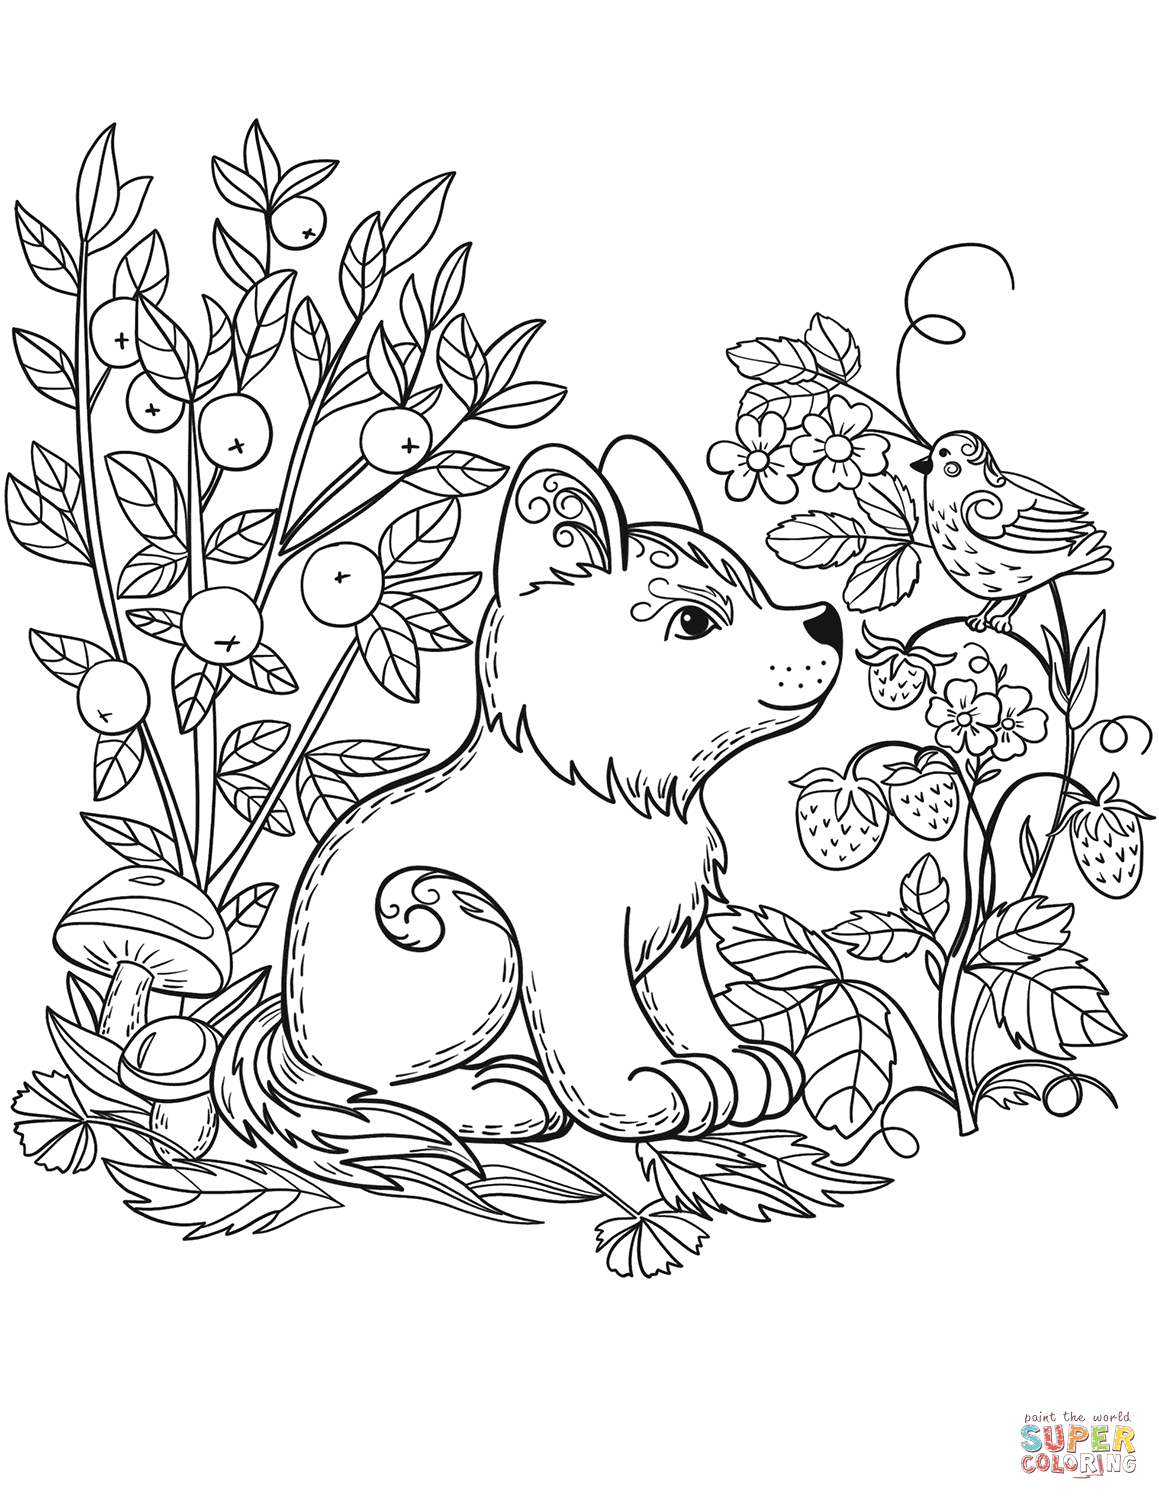 Puppy Dog In The Forest Coloring Page